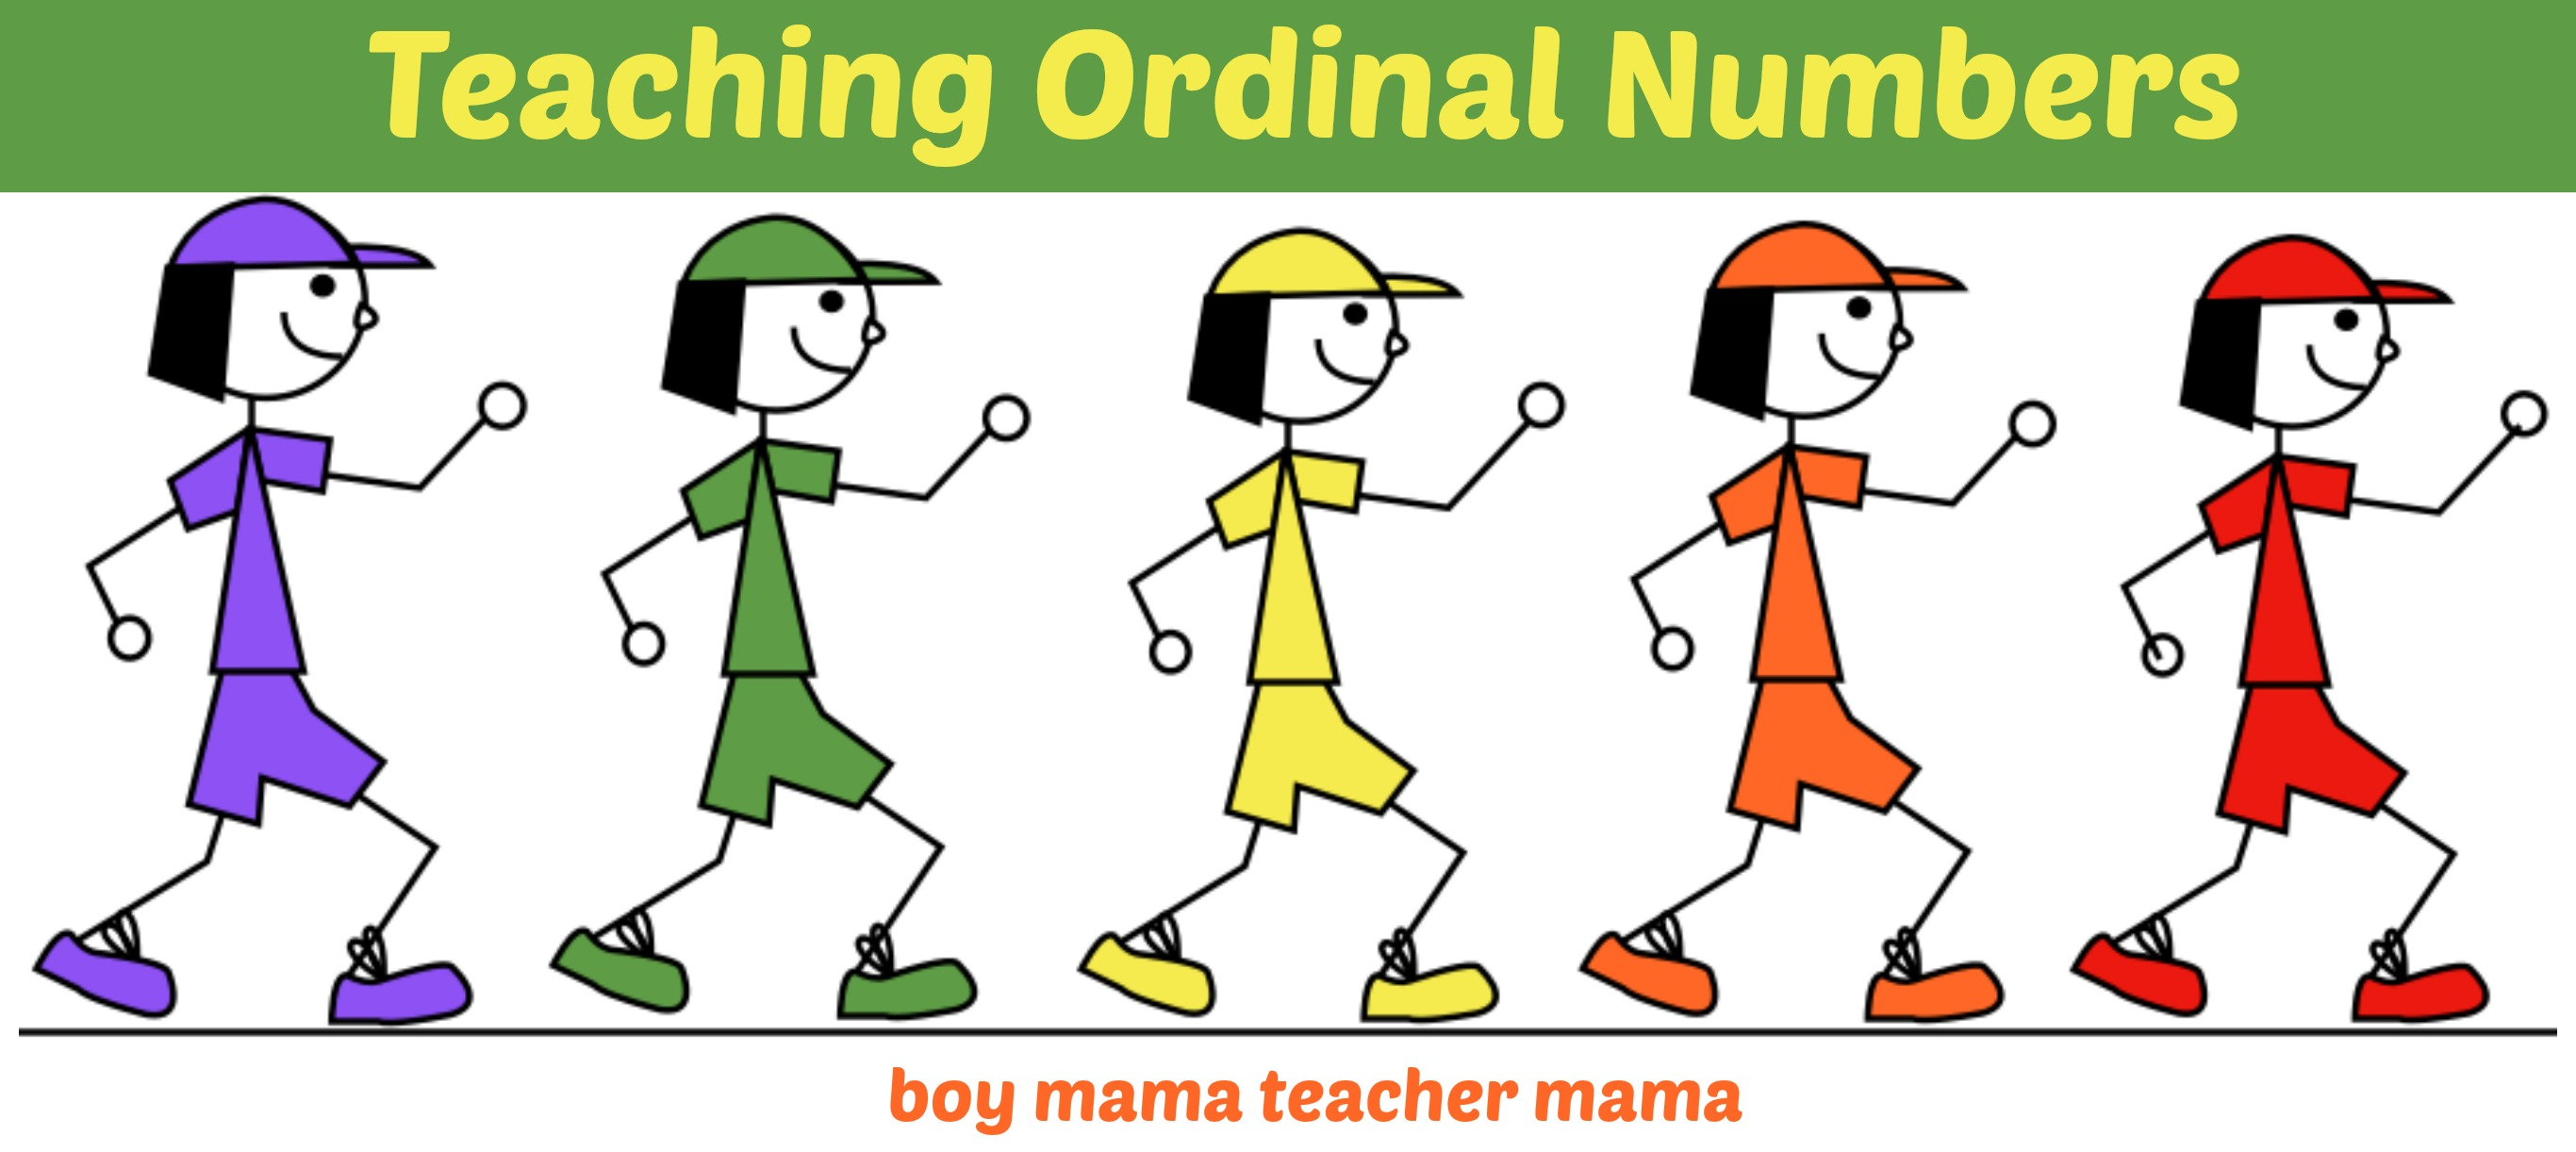 Teaching Ordinal Numbers - Lawteched